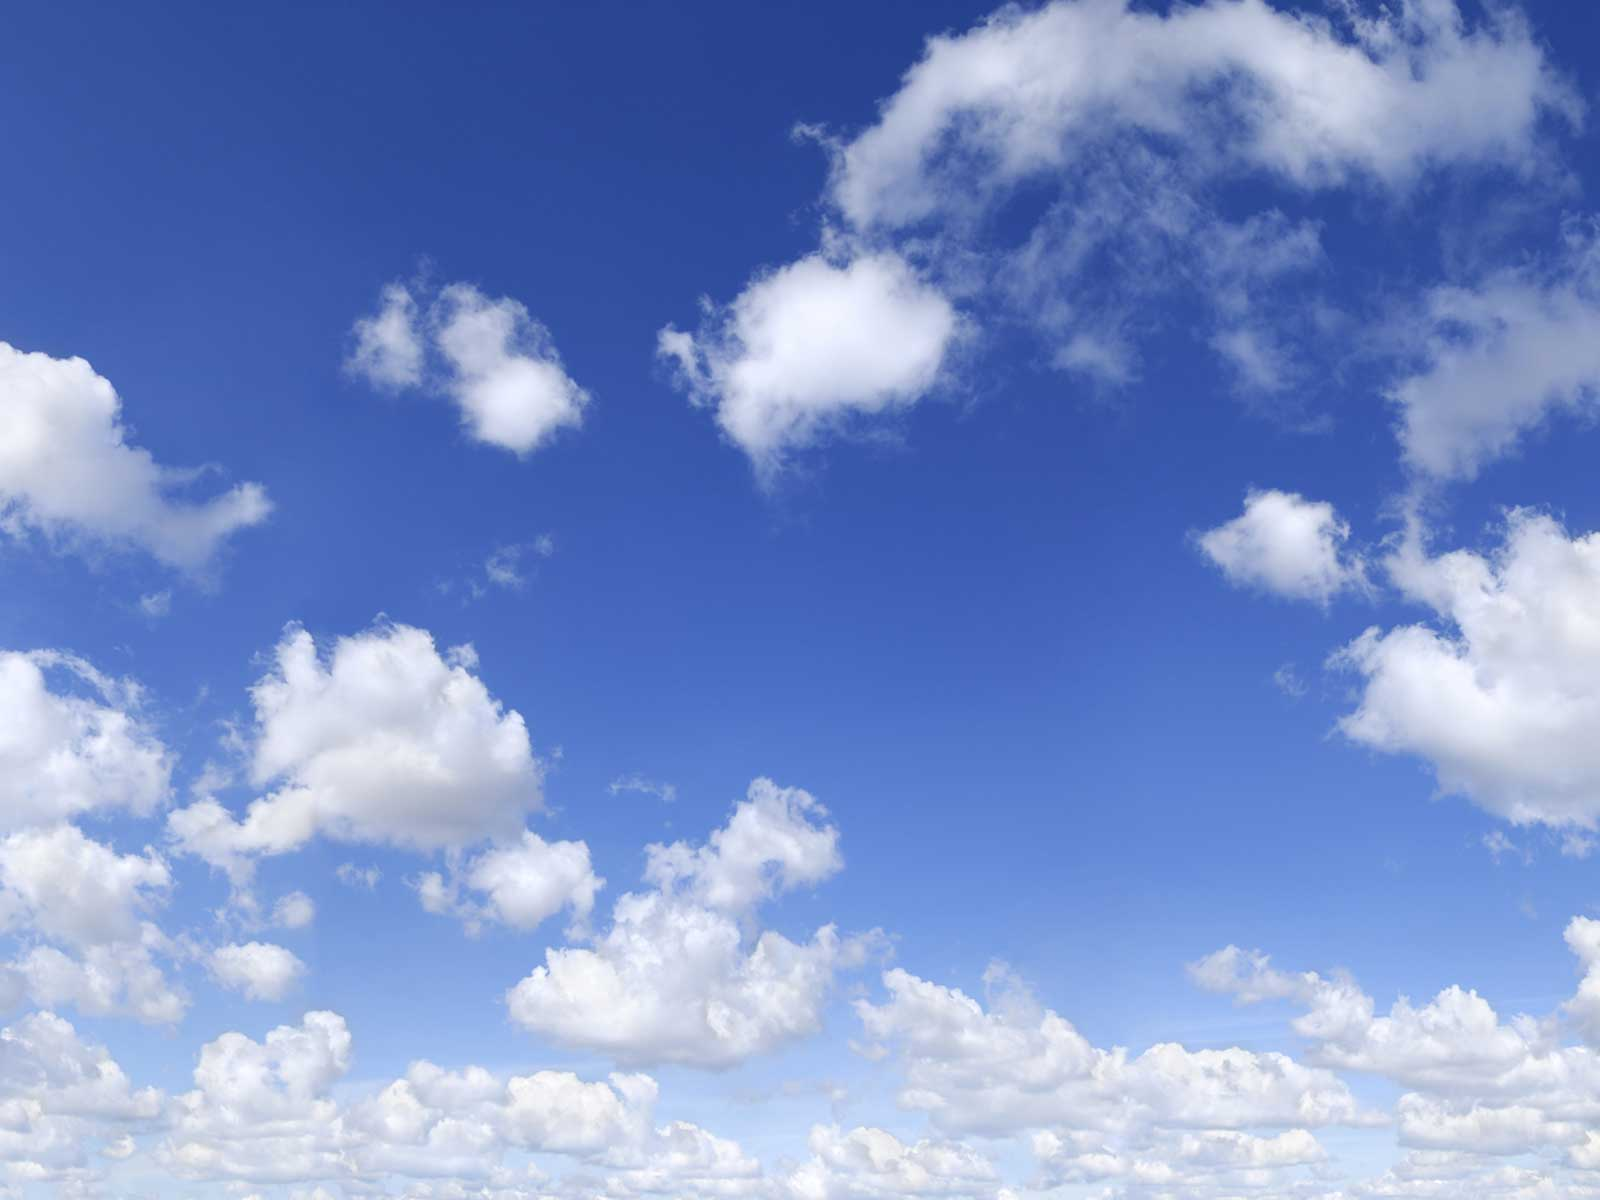 Blue Sky With Clouds Wallpaper 56 Images: Cloudy Background